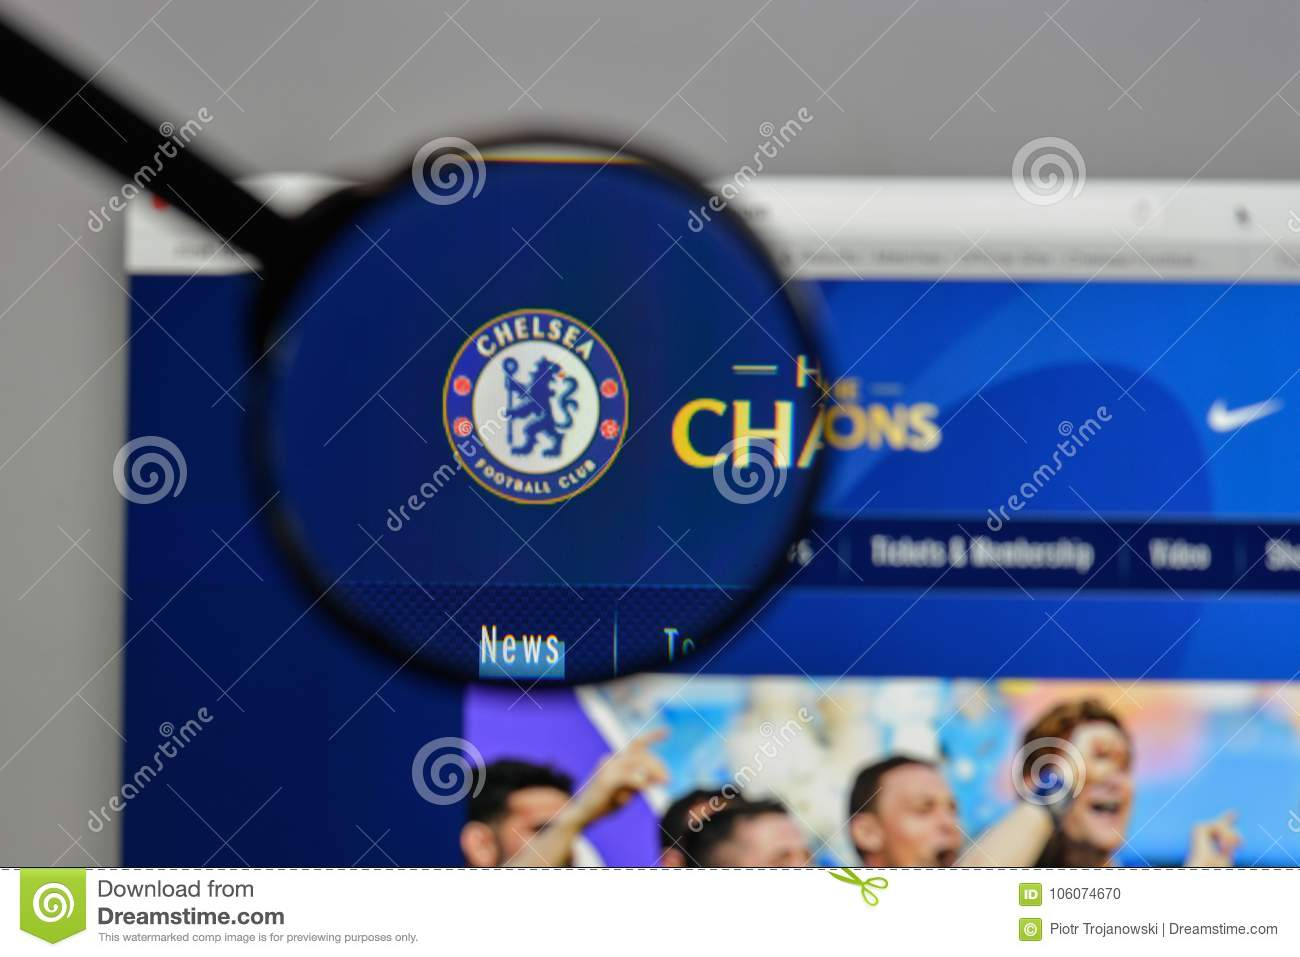 August 10, 2017: Chelsea FC Logo On The